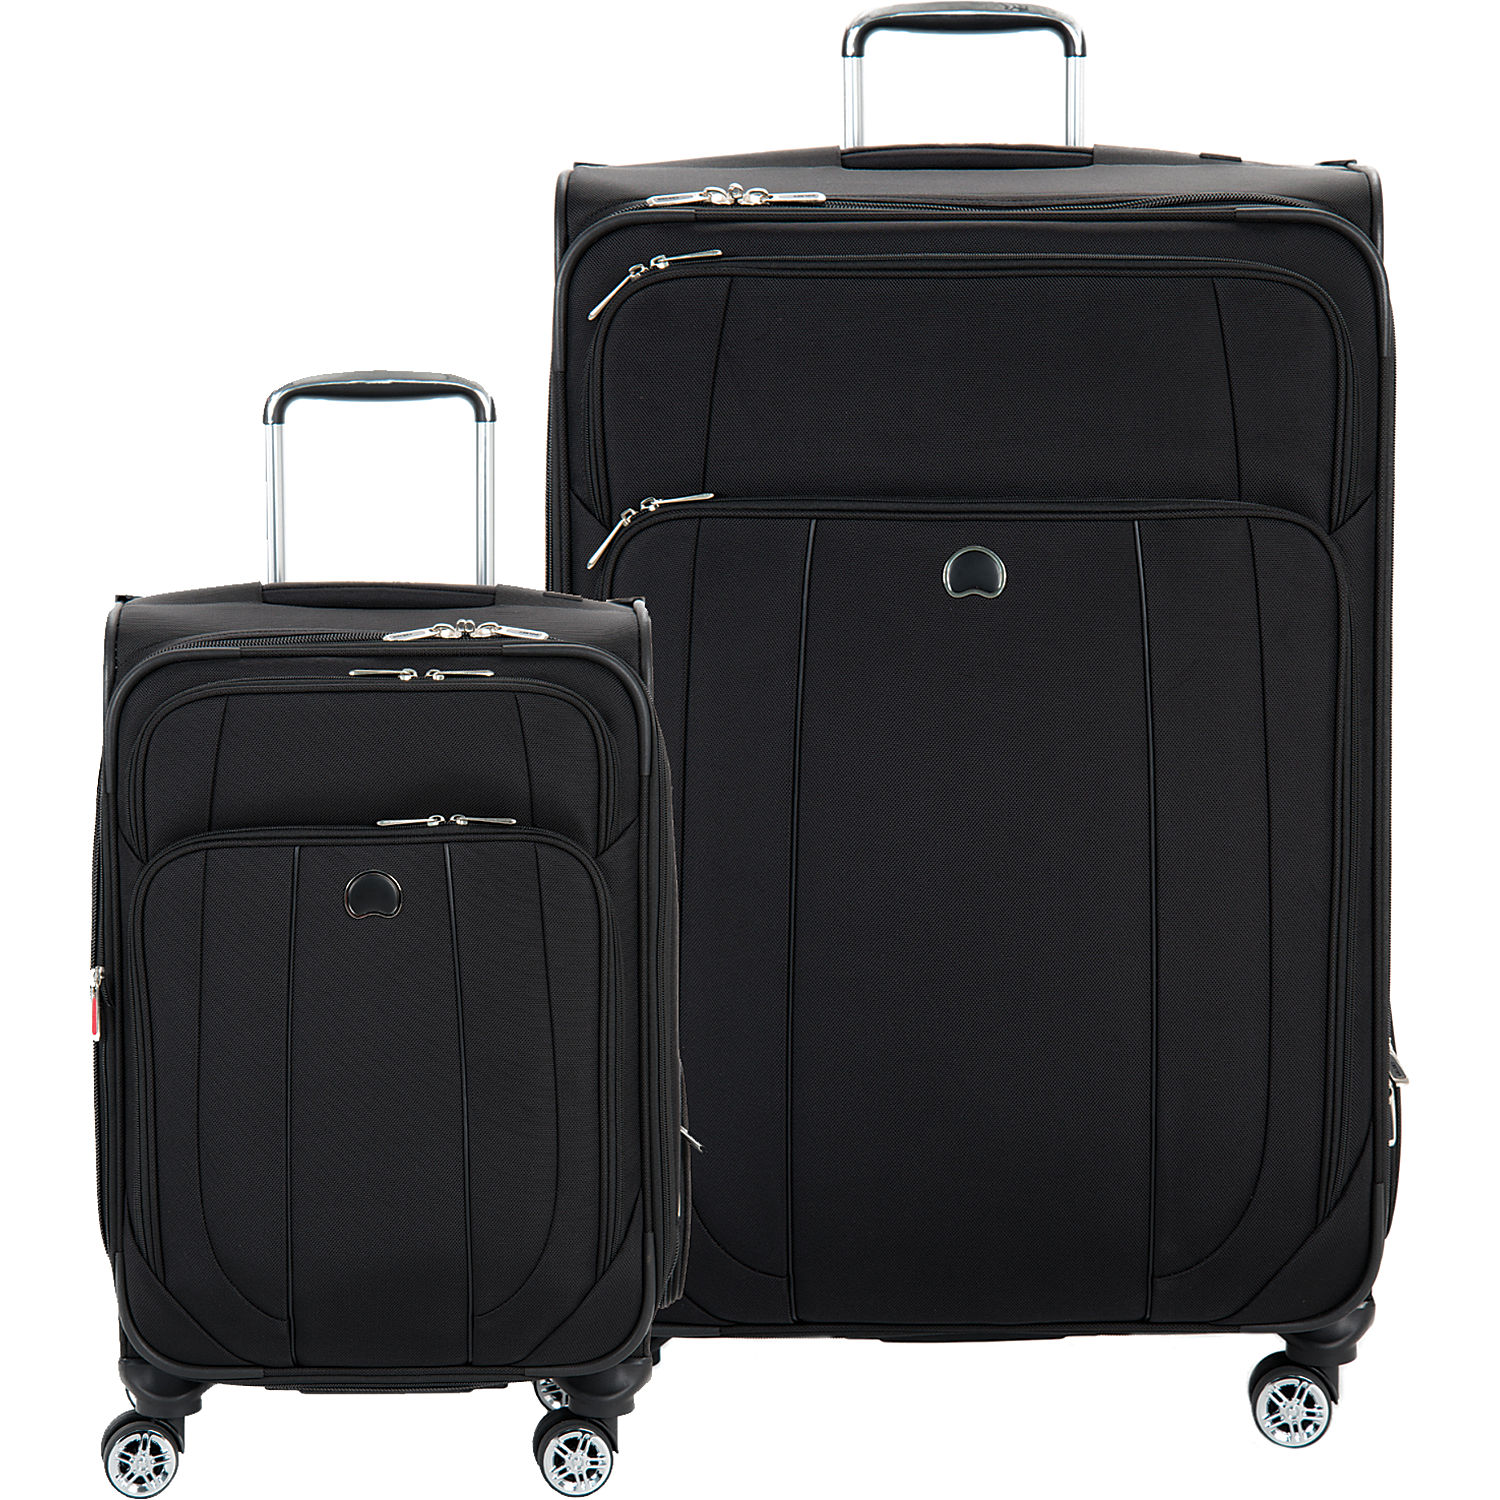 delsey helium cruise 21 inch and 29 inch spinner luggage set. Black Bedroom Furniture Sets. Home Design Ideas